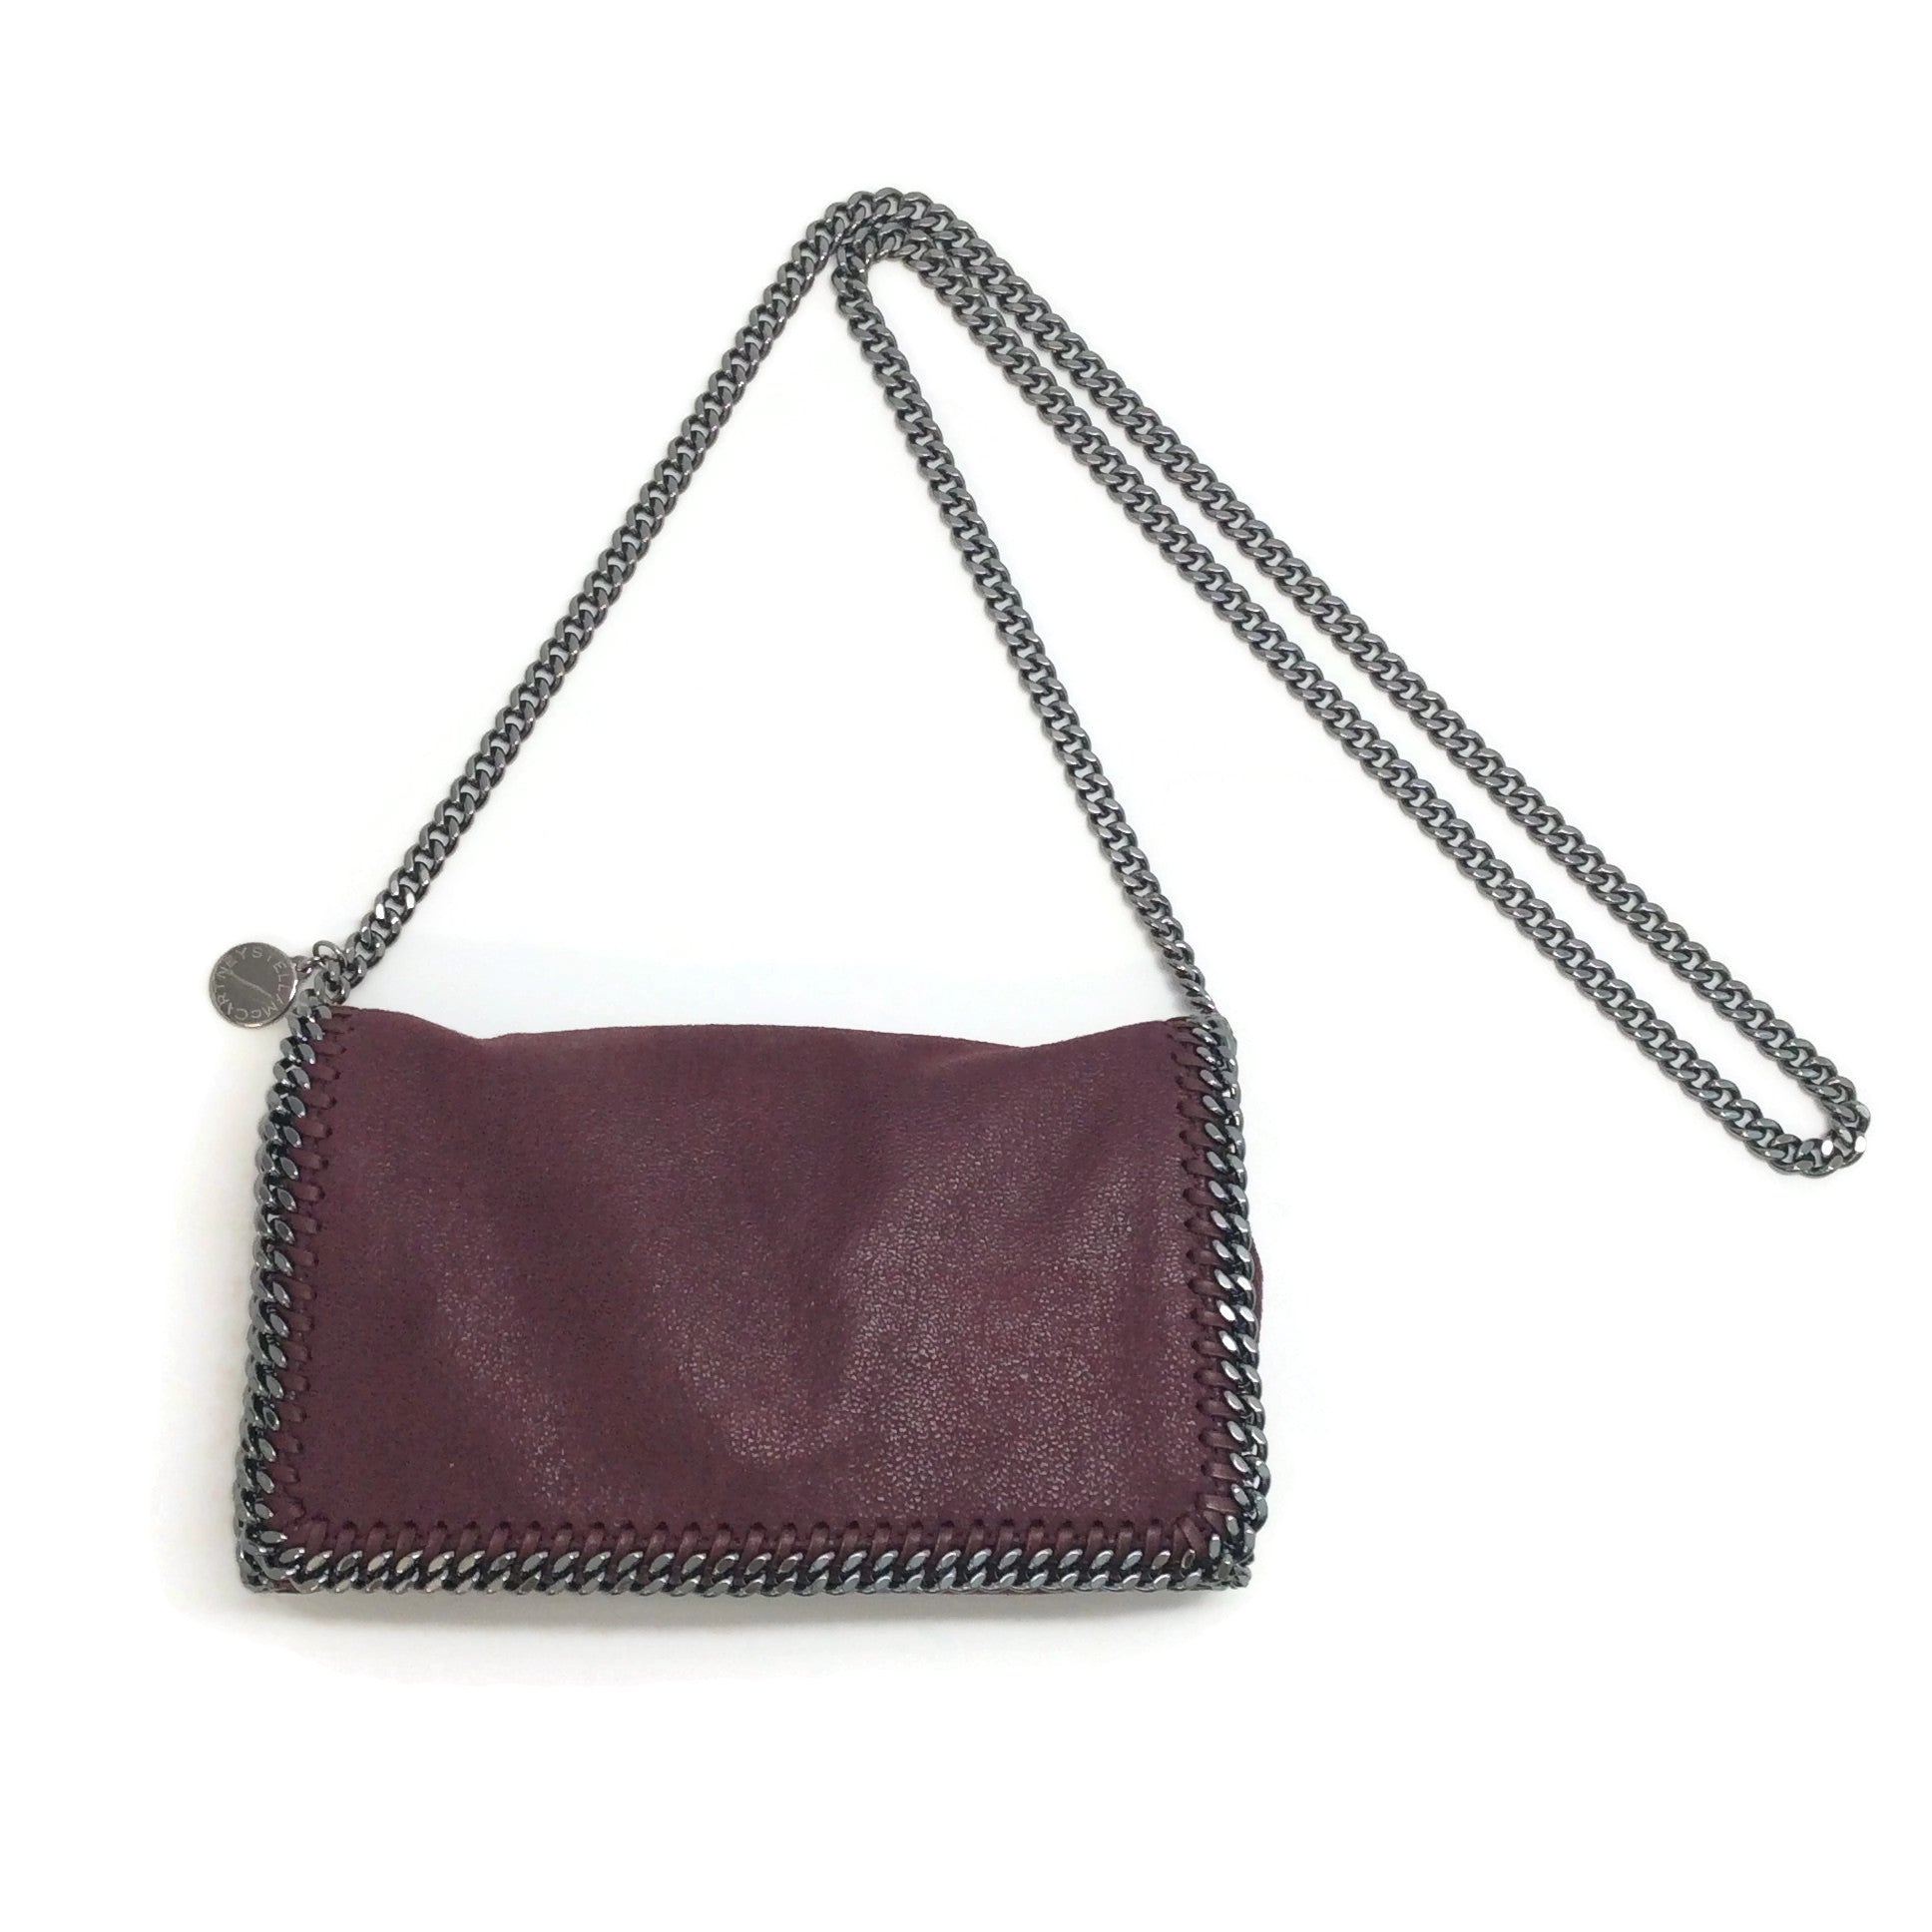 Stella McCartney Falabella Oxblood Shaggy Deer Shoulder Bag